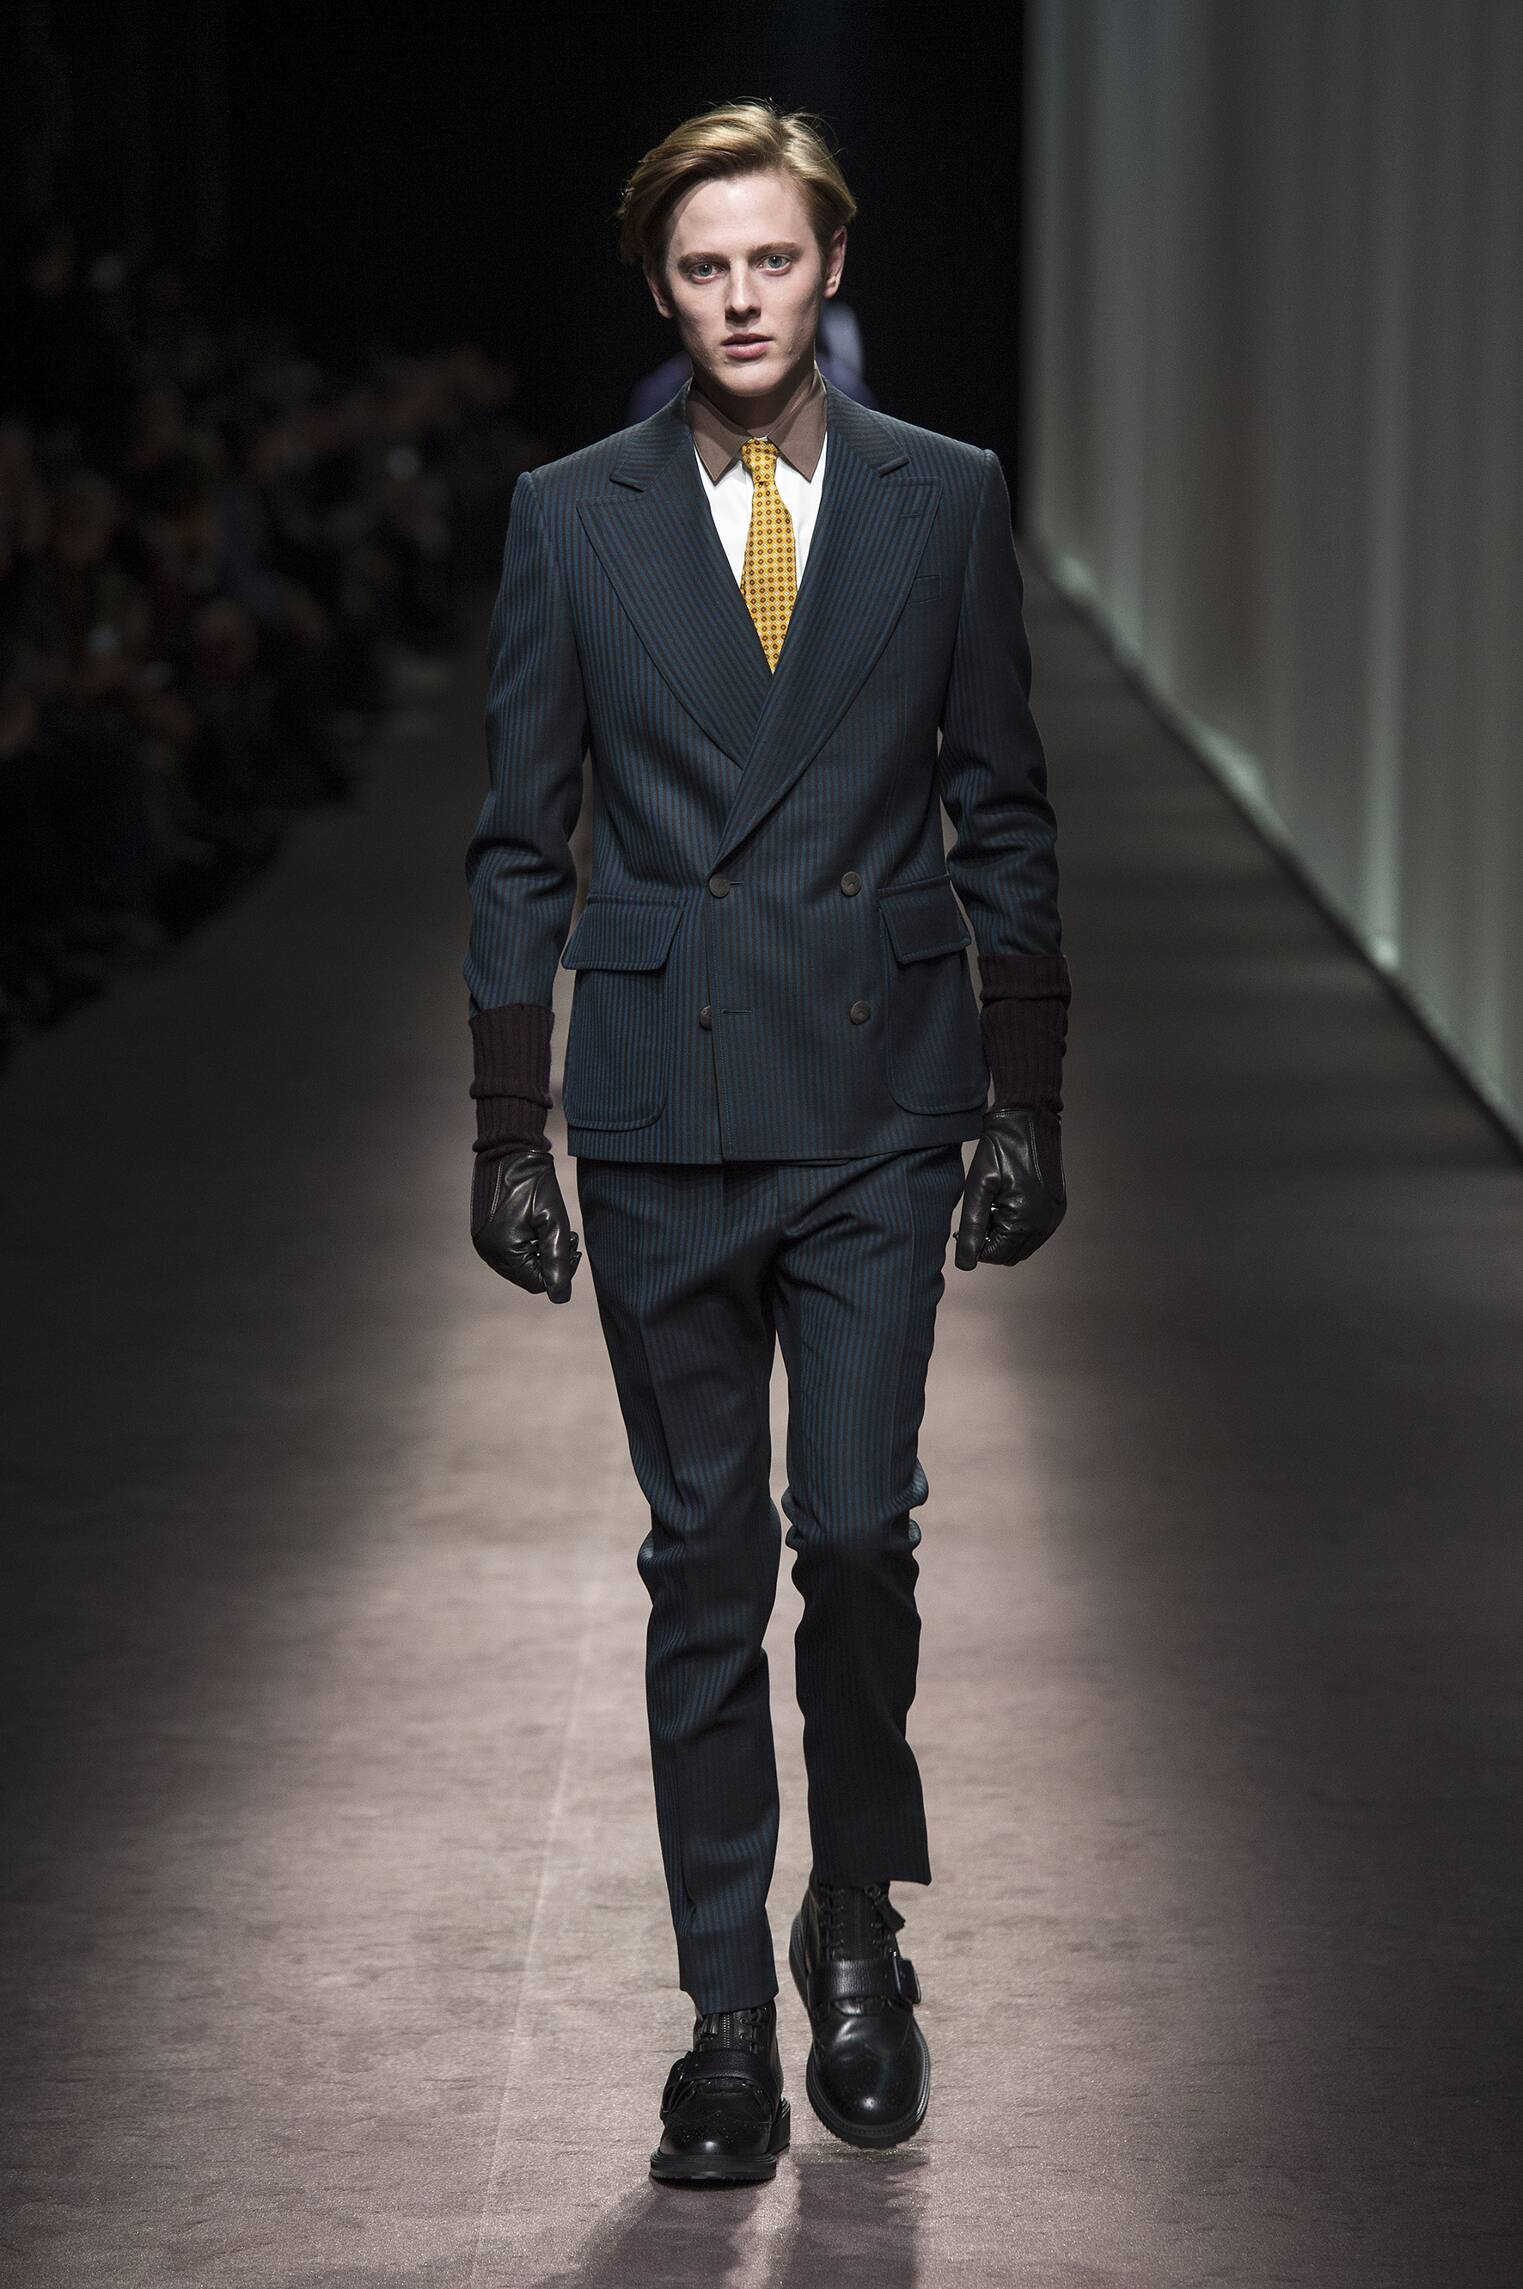 Canali Milan Fashion Week Menswear